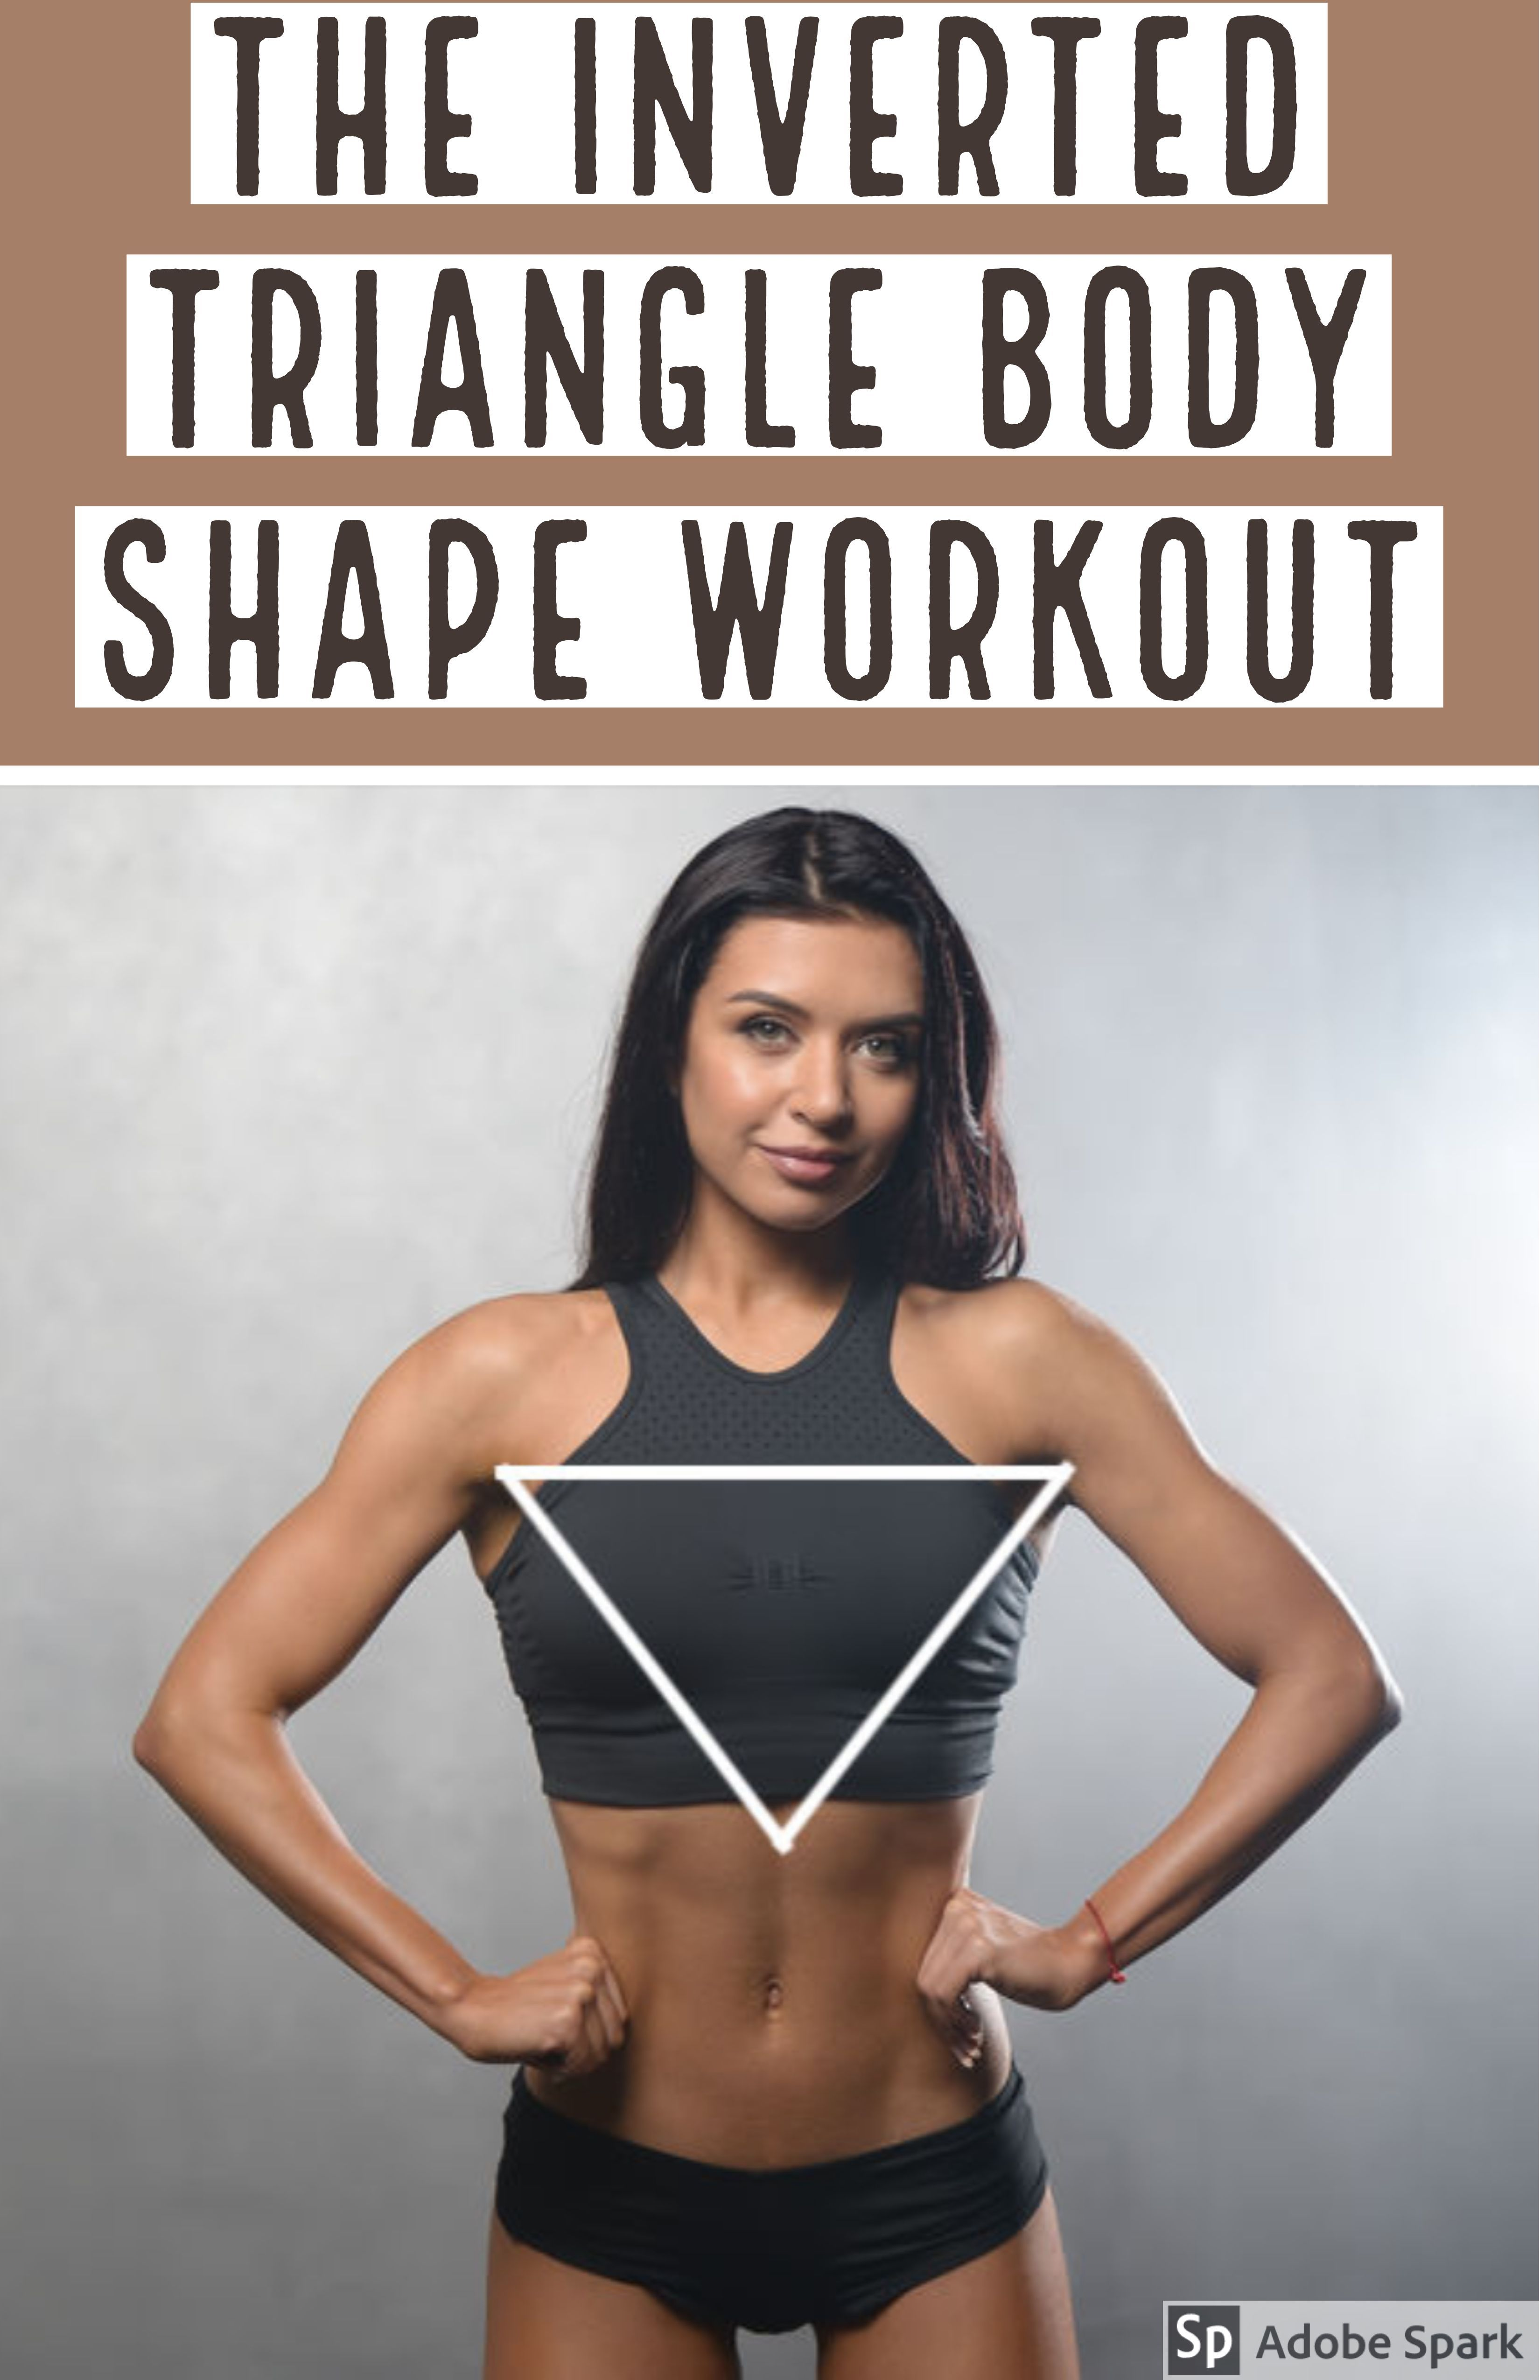 This exercise program will help to give your body a more balanced look. #workout #fitness #fitfam #w...